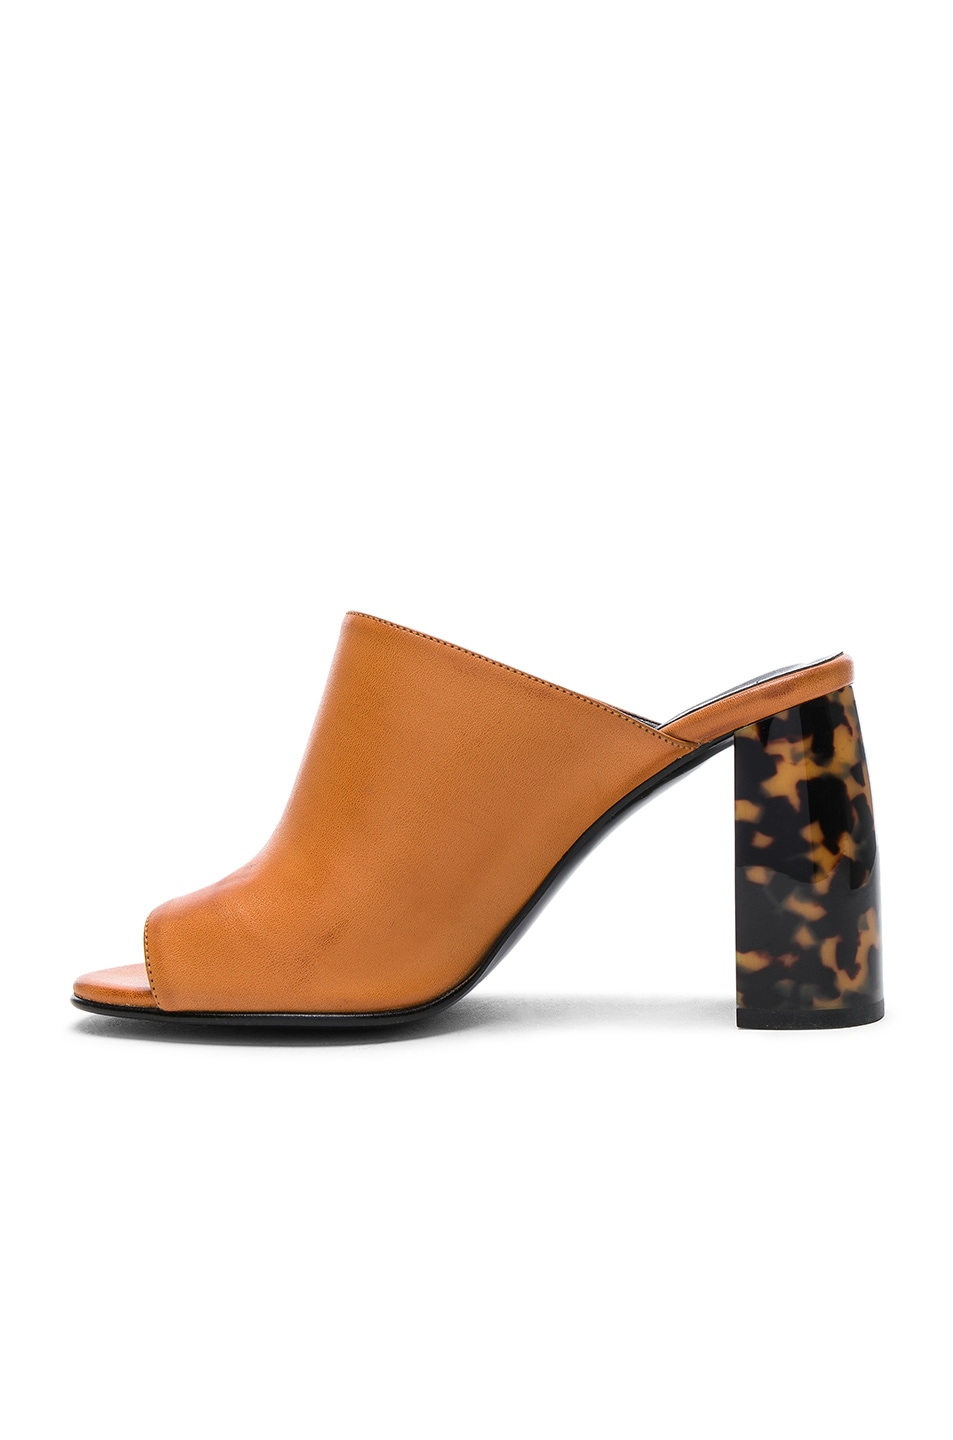 Image 5 of Stella McCartney Mules in Biscuit